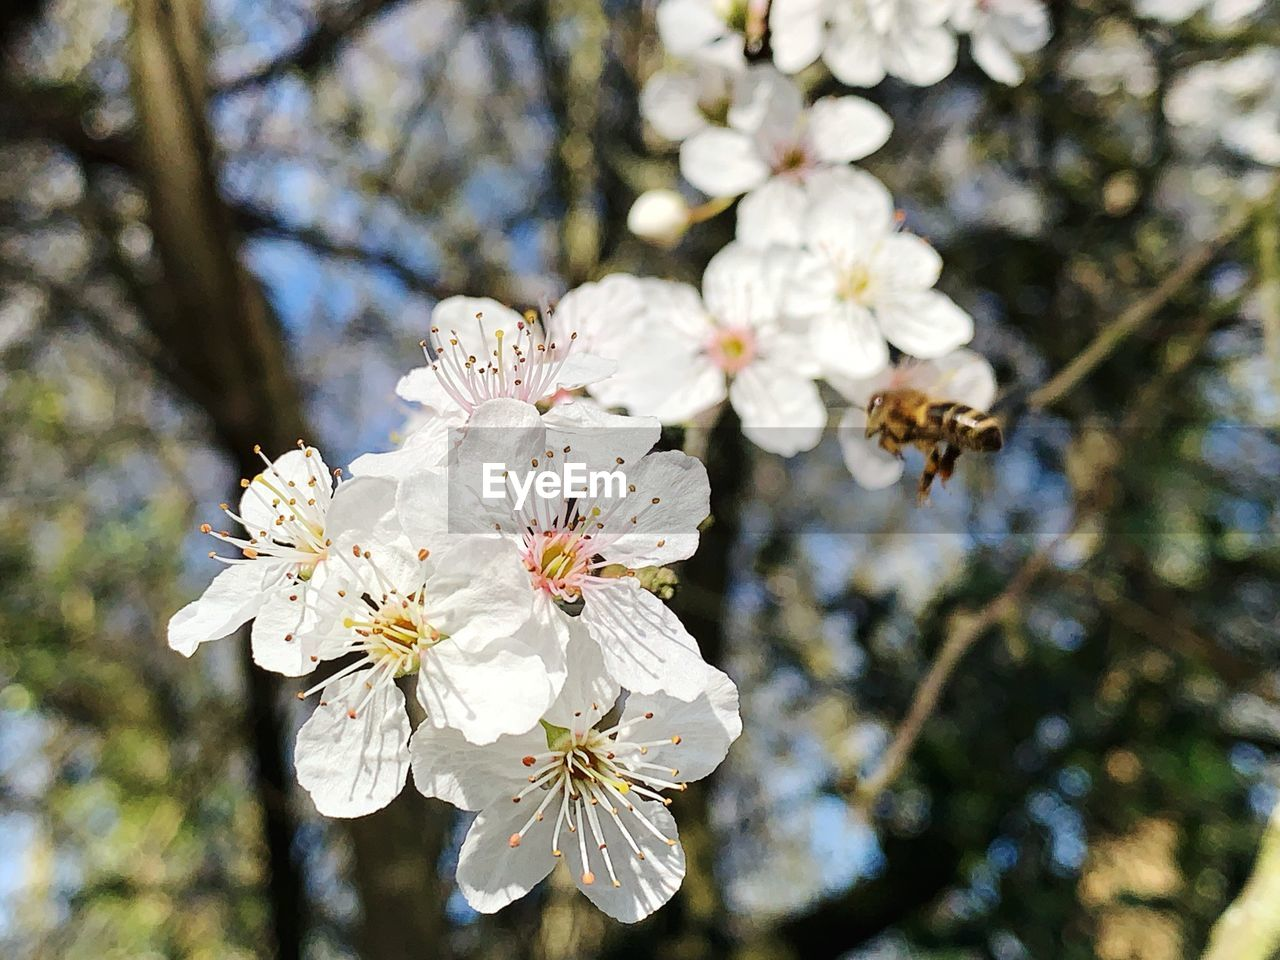 flower, flowering plant, plant, fragility, growth, freshness, white color, tree, beauty in nature, vulnerability, blossom, focus on foreground, branch, nature, springtime, day, cherry blossom, pollen, close-up, twig, flower head, no people, cherry tree, outdoors, spring